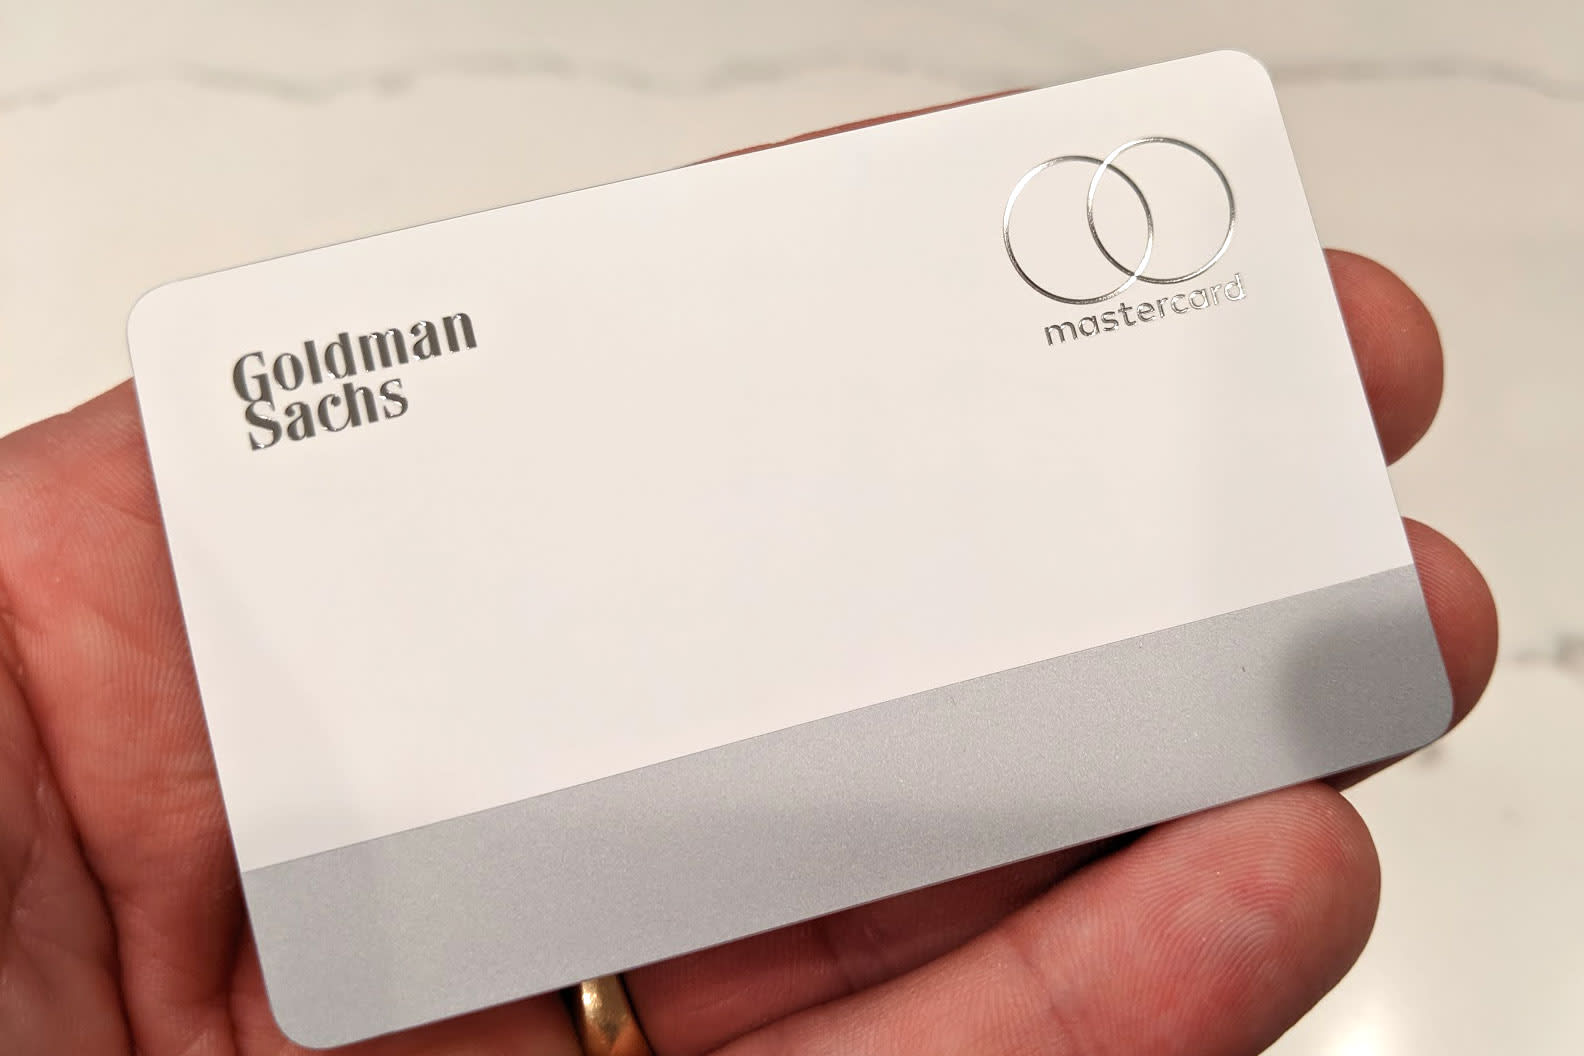 Goldman wants to fix the Apple Card flaw that has users claiming bias